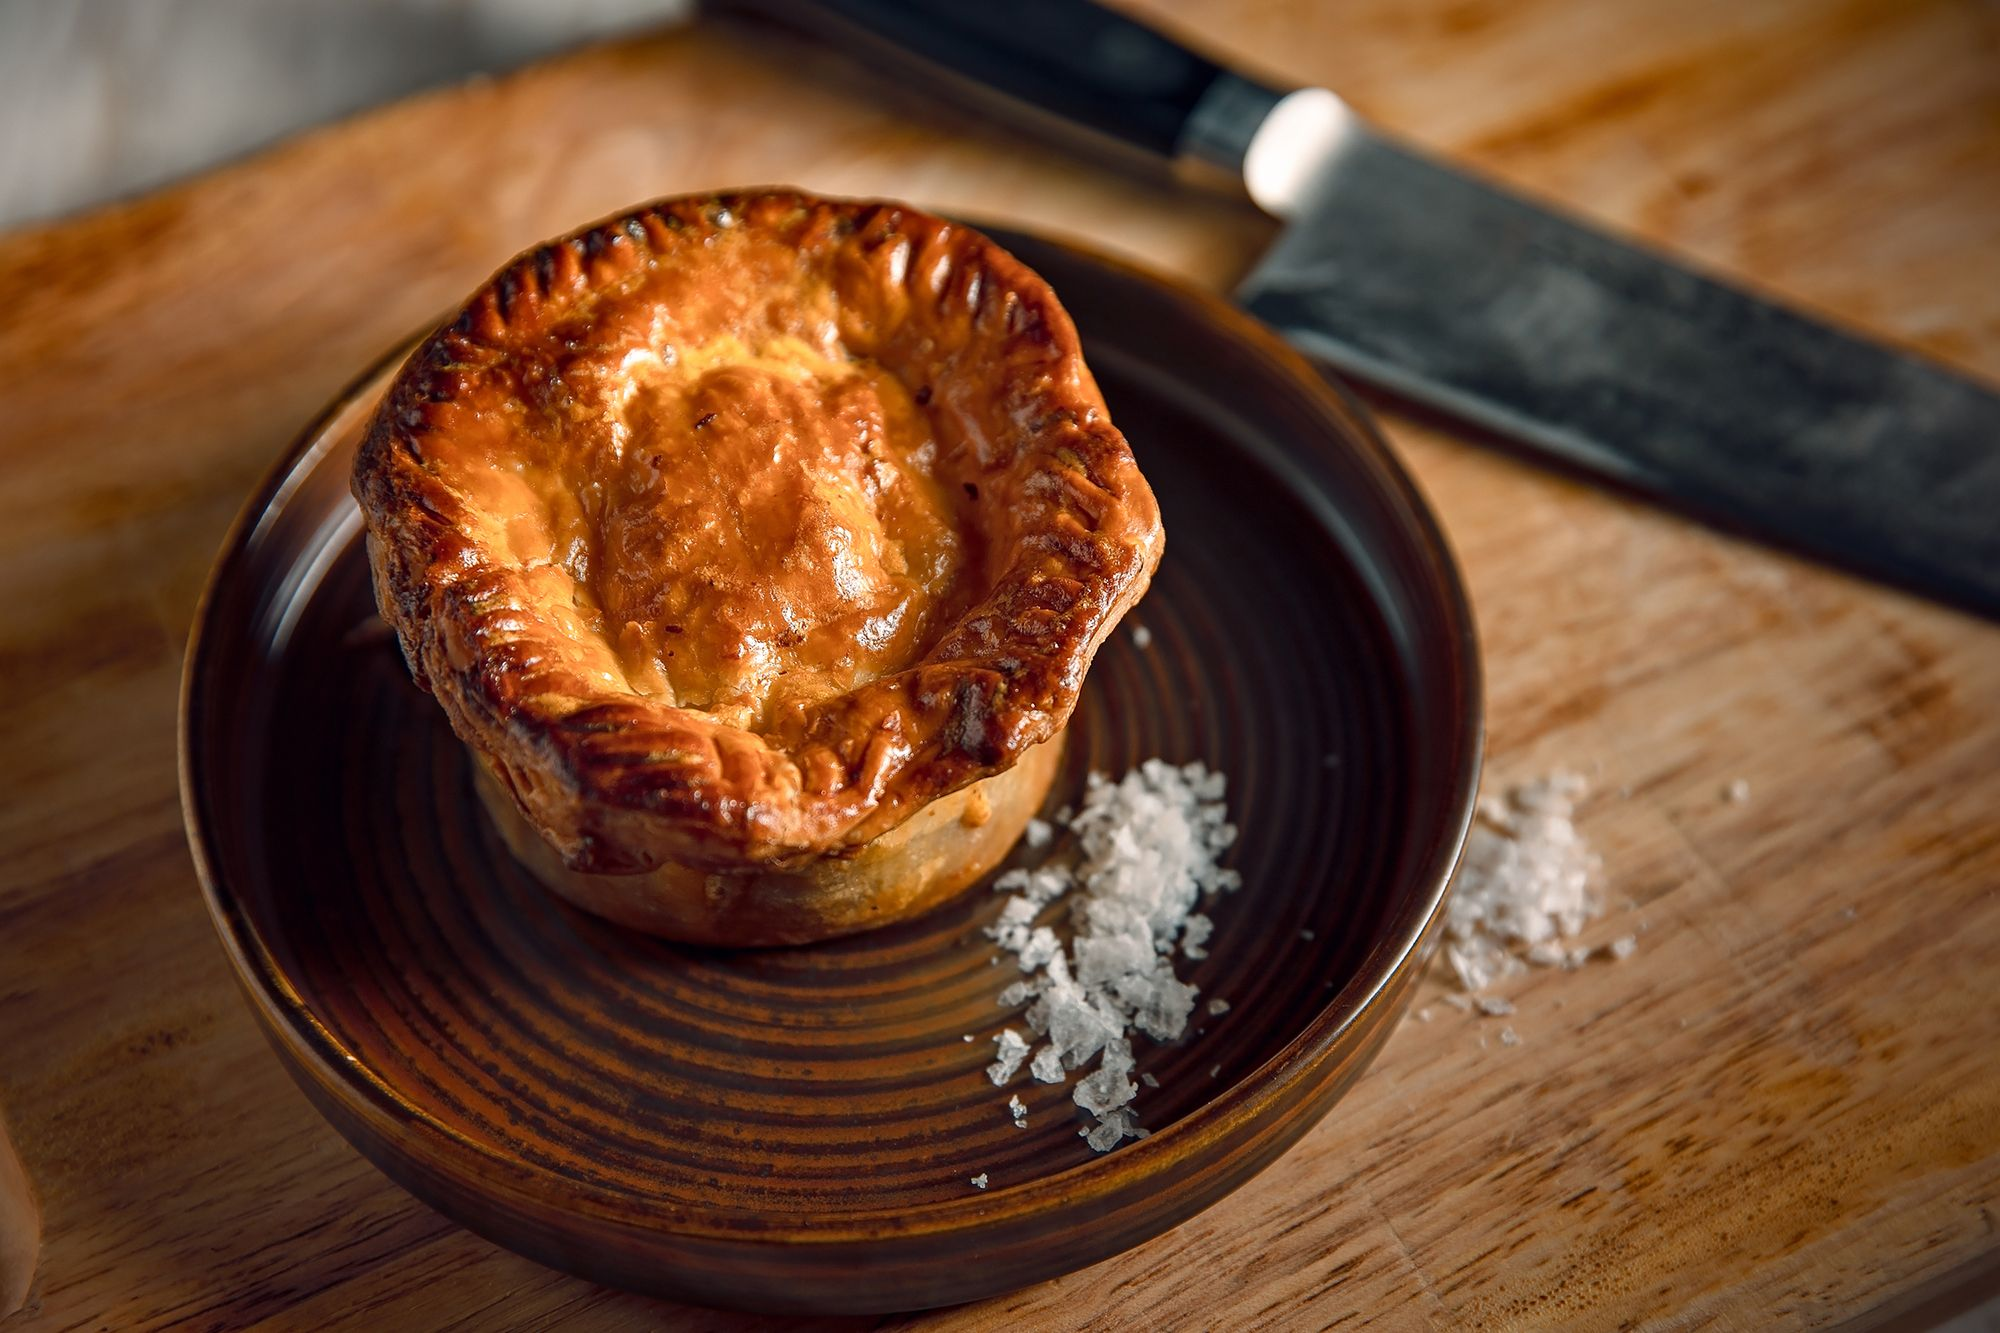 Review: For Fans Of British Grub, The Leah Offers Cold Comfort